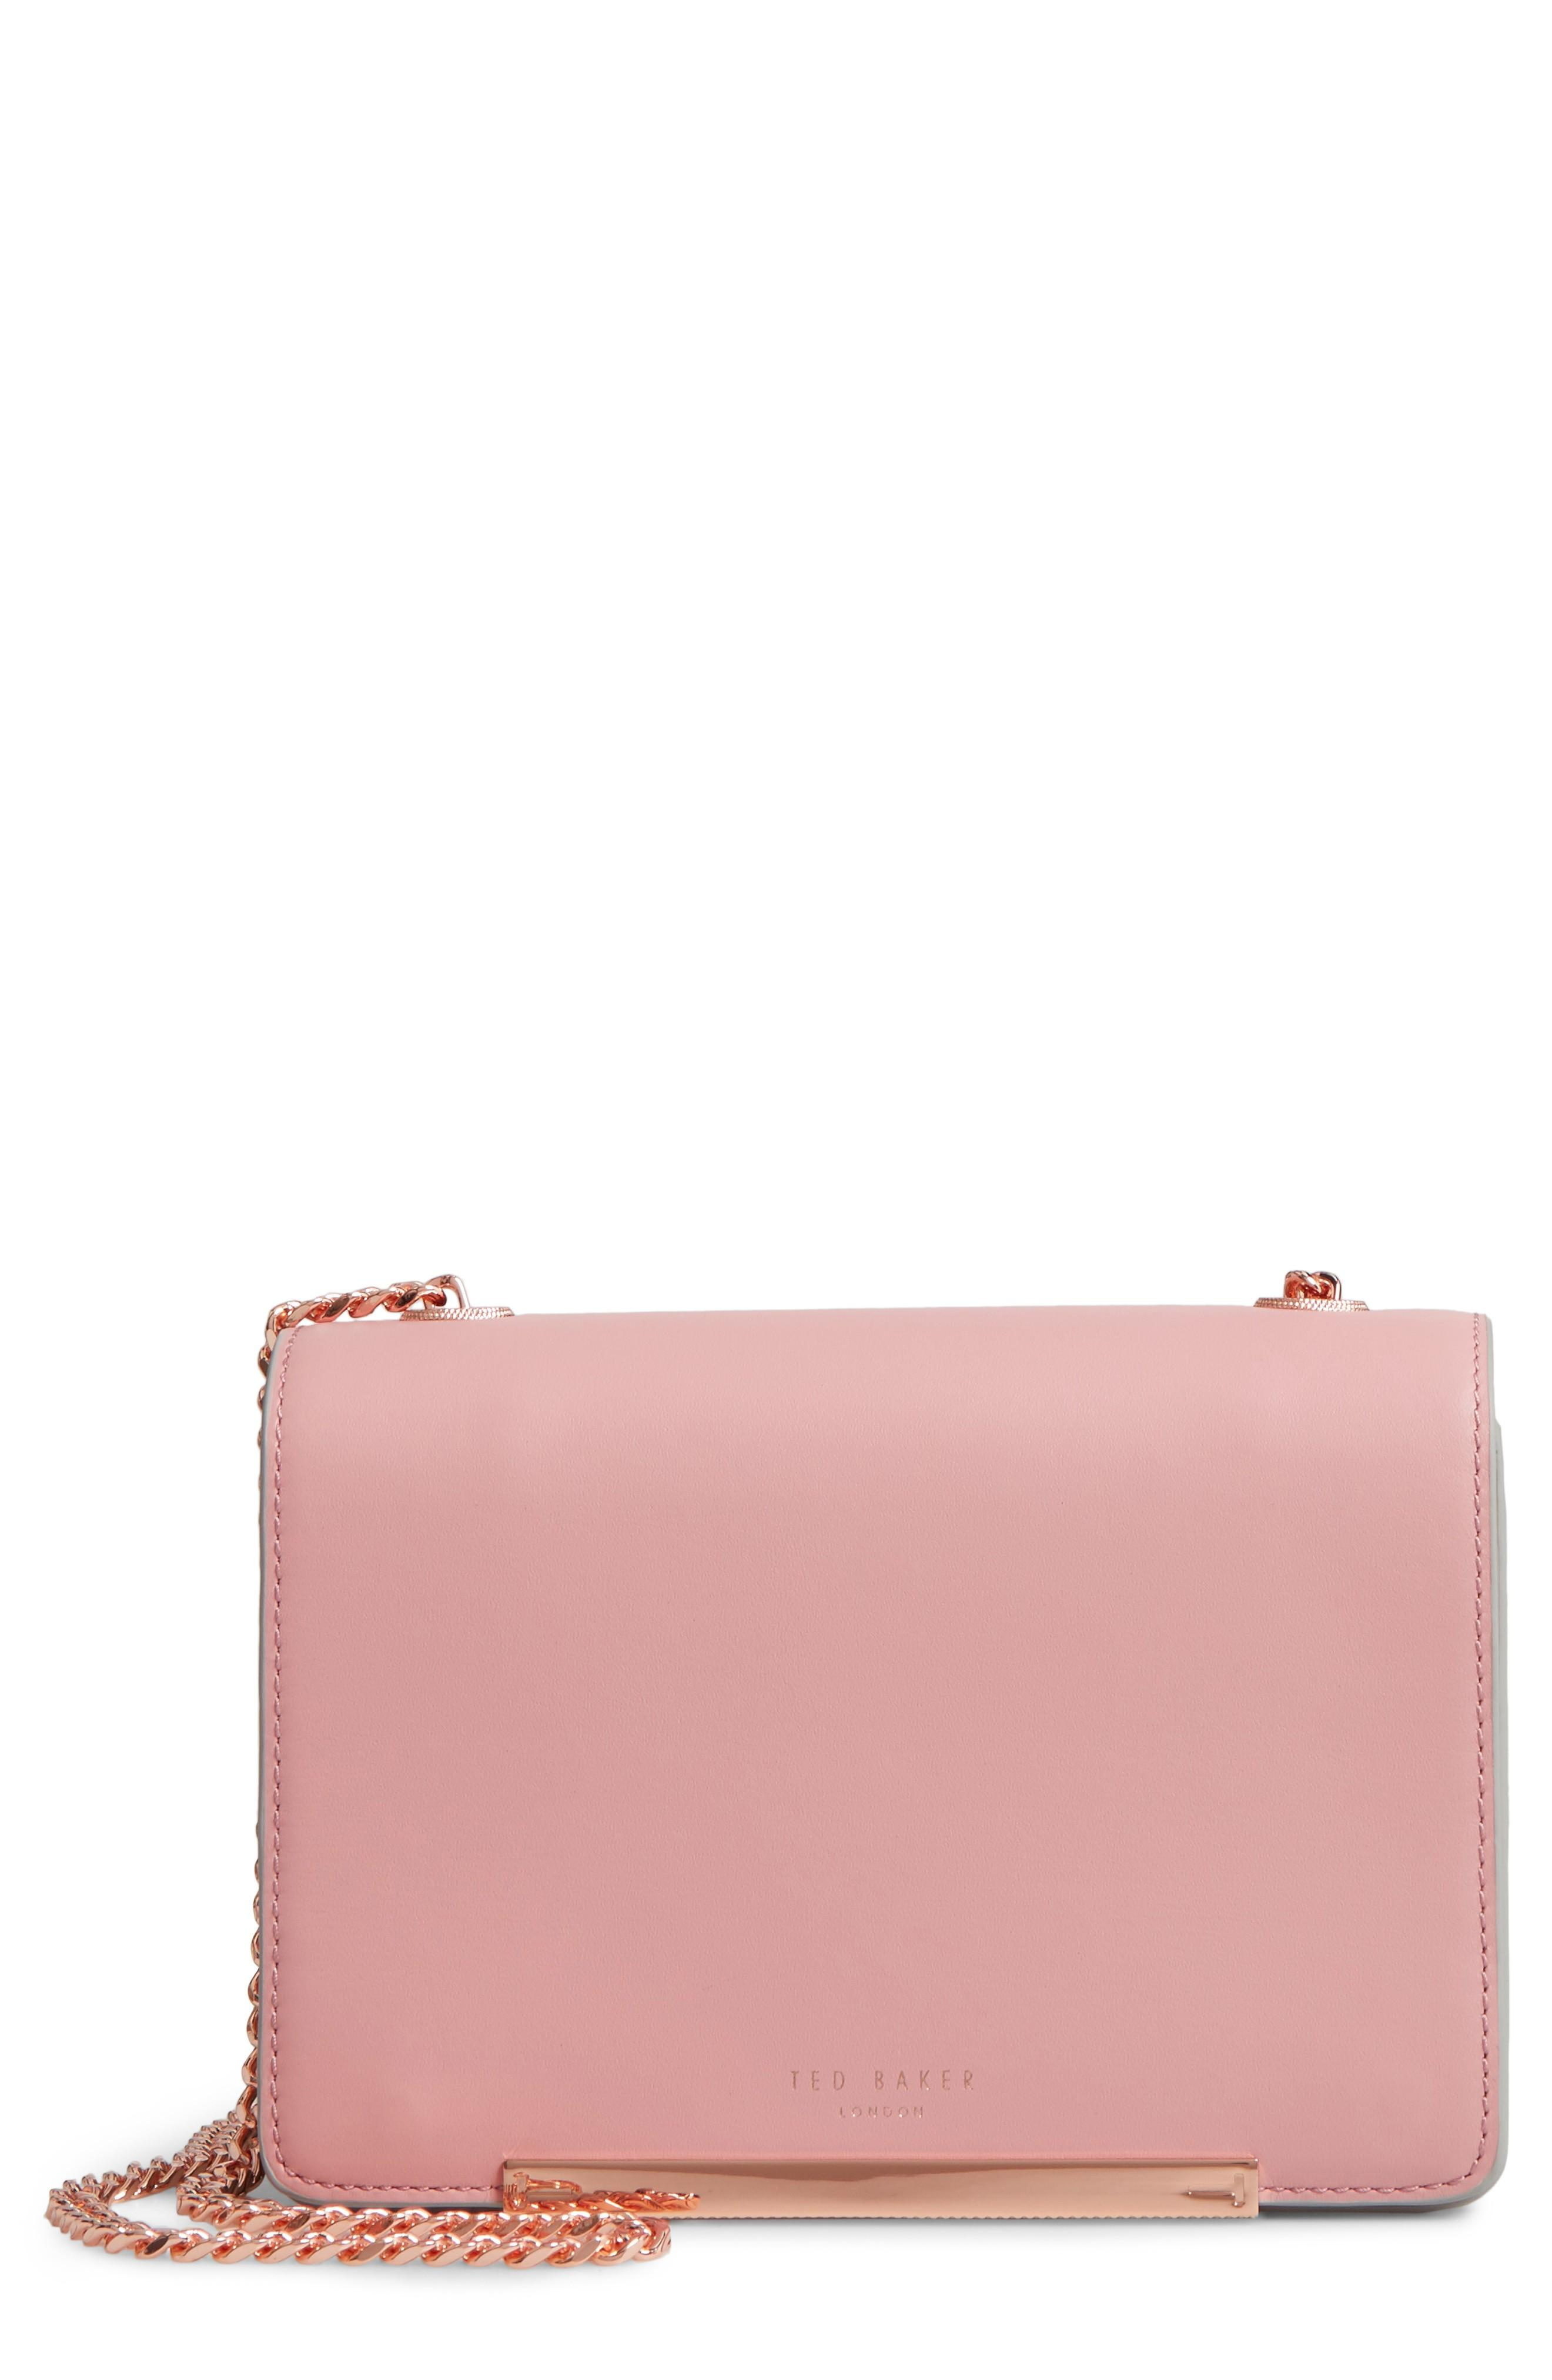 20b6ced9c Ted Baker Earie Leather Crossbody Bag - Pink In Dusky Pink